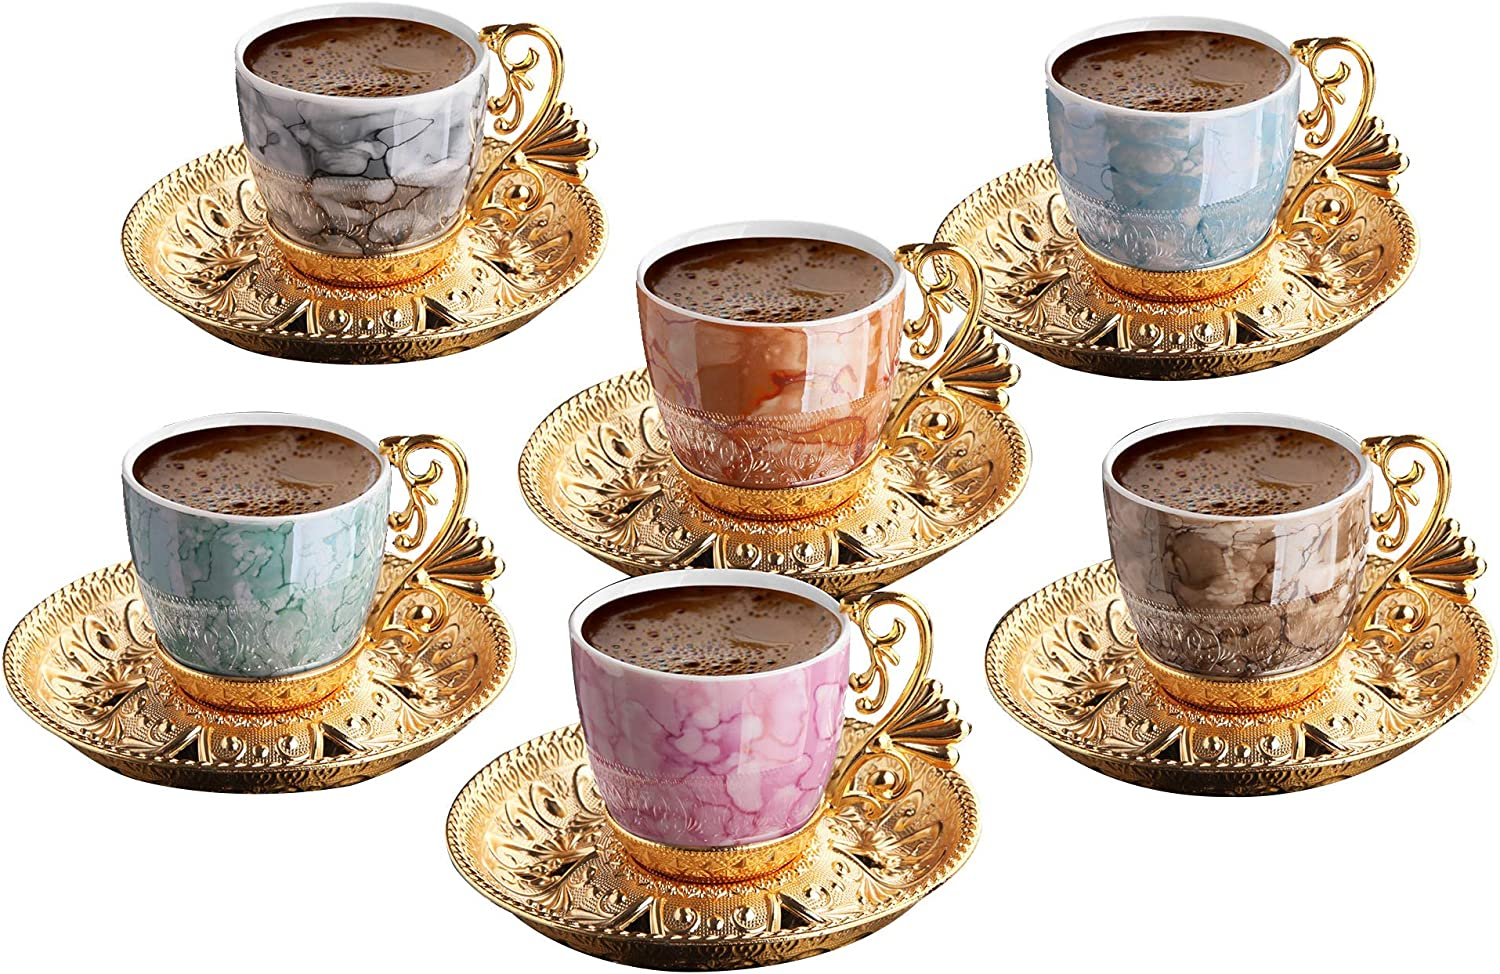 (Set of 6) Demmex Turkish Greek Arabic Coffee Espresso Demitasse Cup Saucer Spoon Set, Black Cups (Gold)